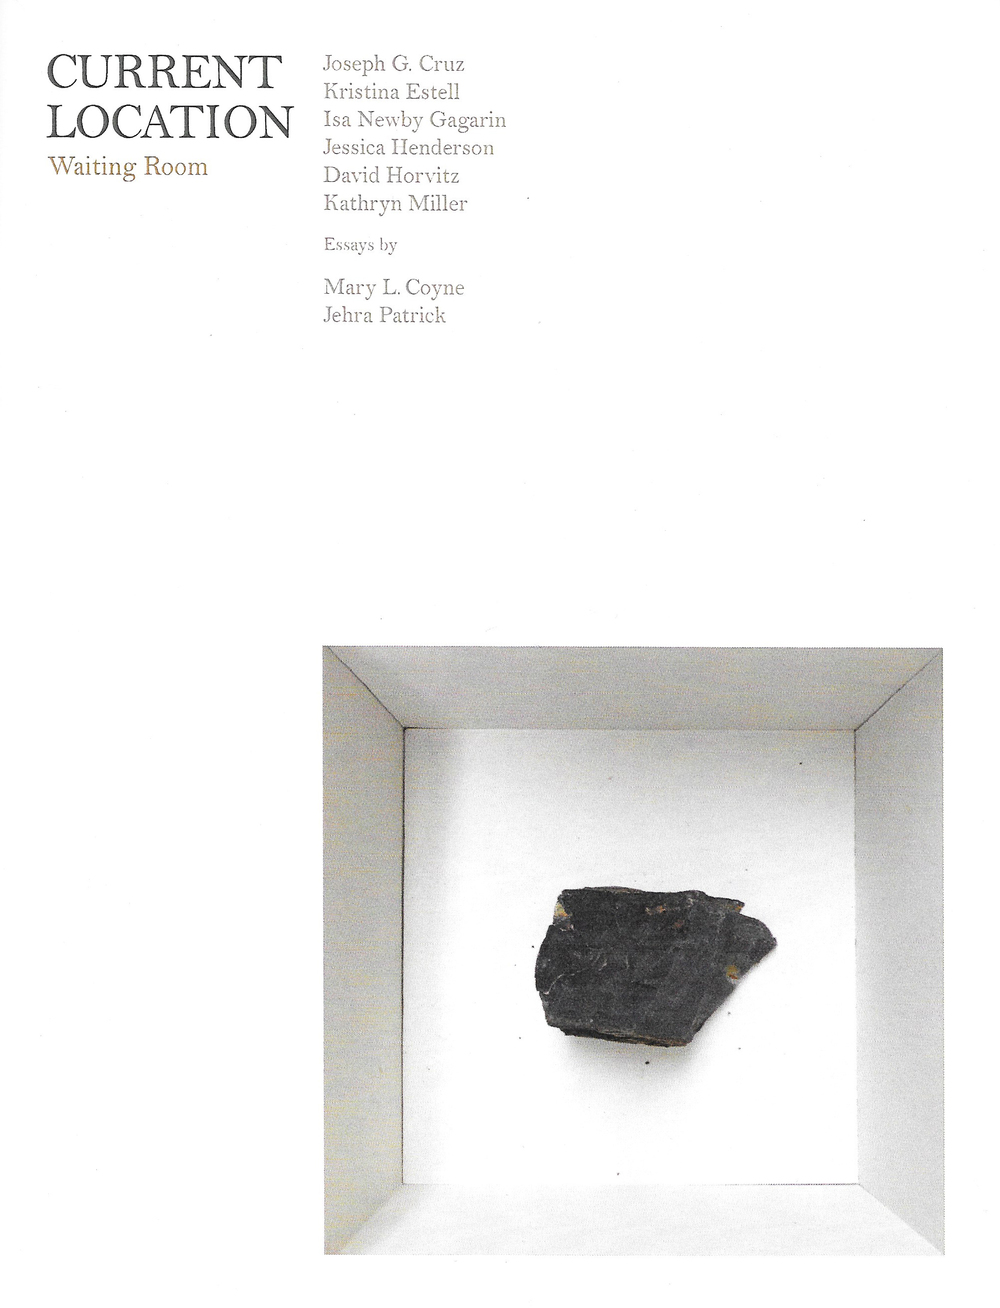 A lovely ESSAY from the Current Location catalog published with Mystery Spot books on the occasion of the exhibition at Waiting Room gallery Minneapolis. Curation and catalog contributions by Mary L. Coyne and Jehra Patrick.